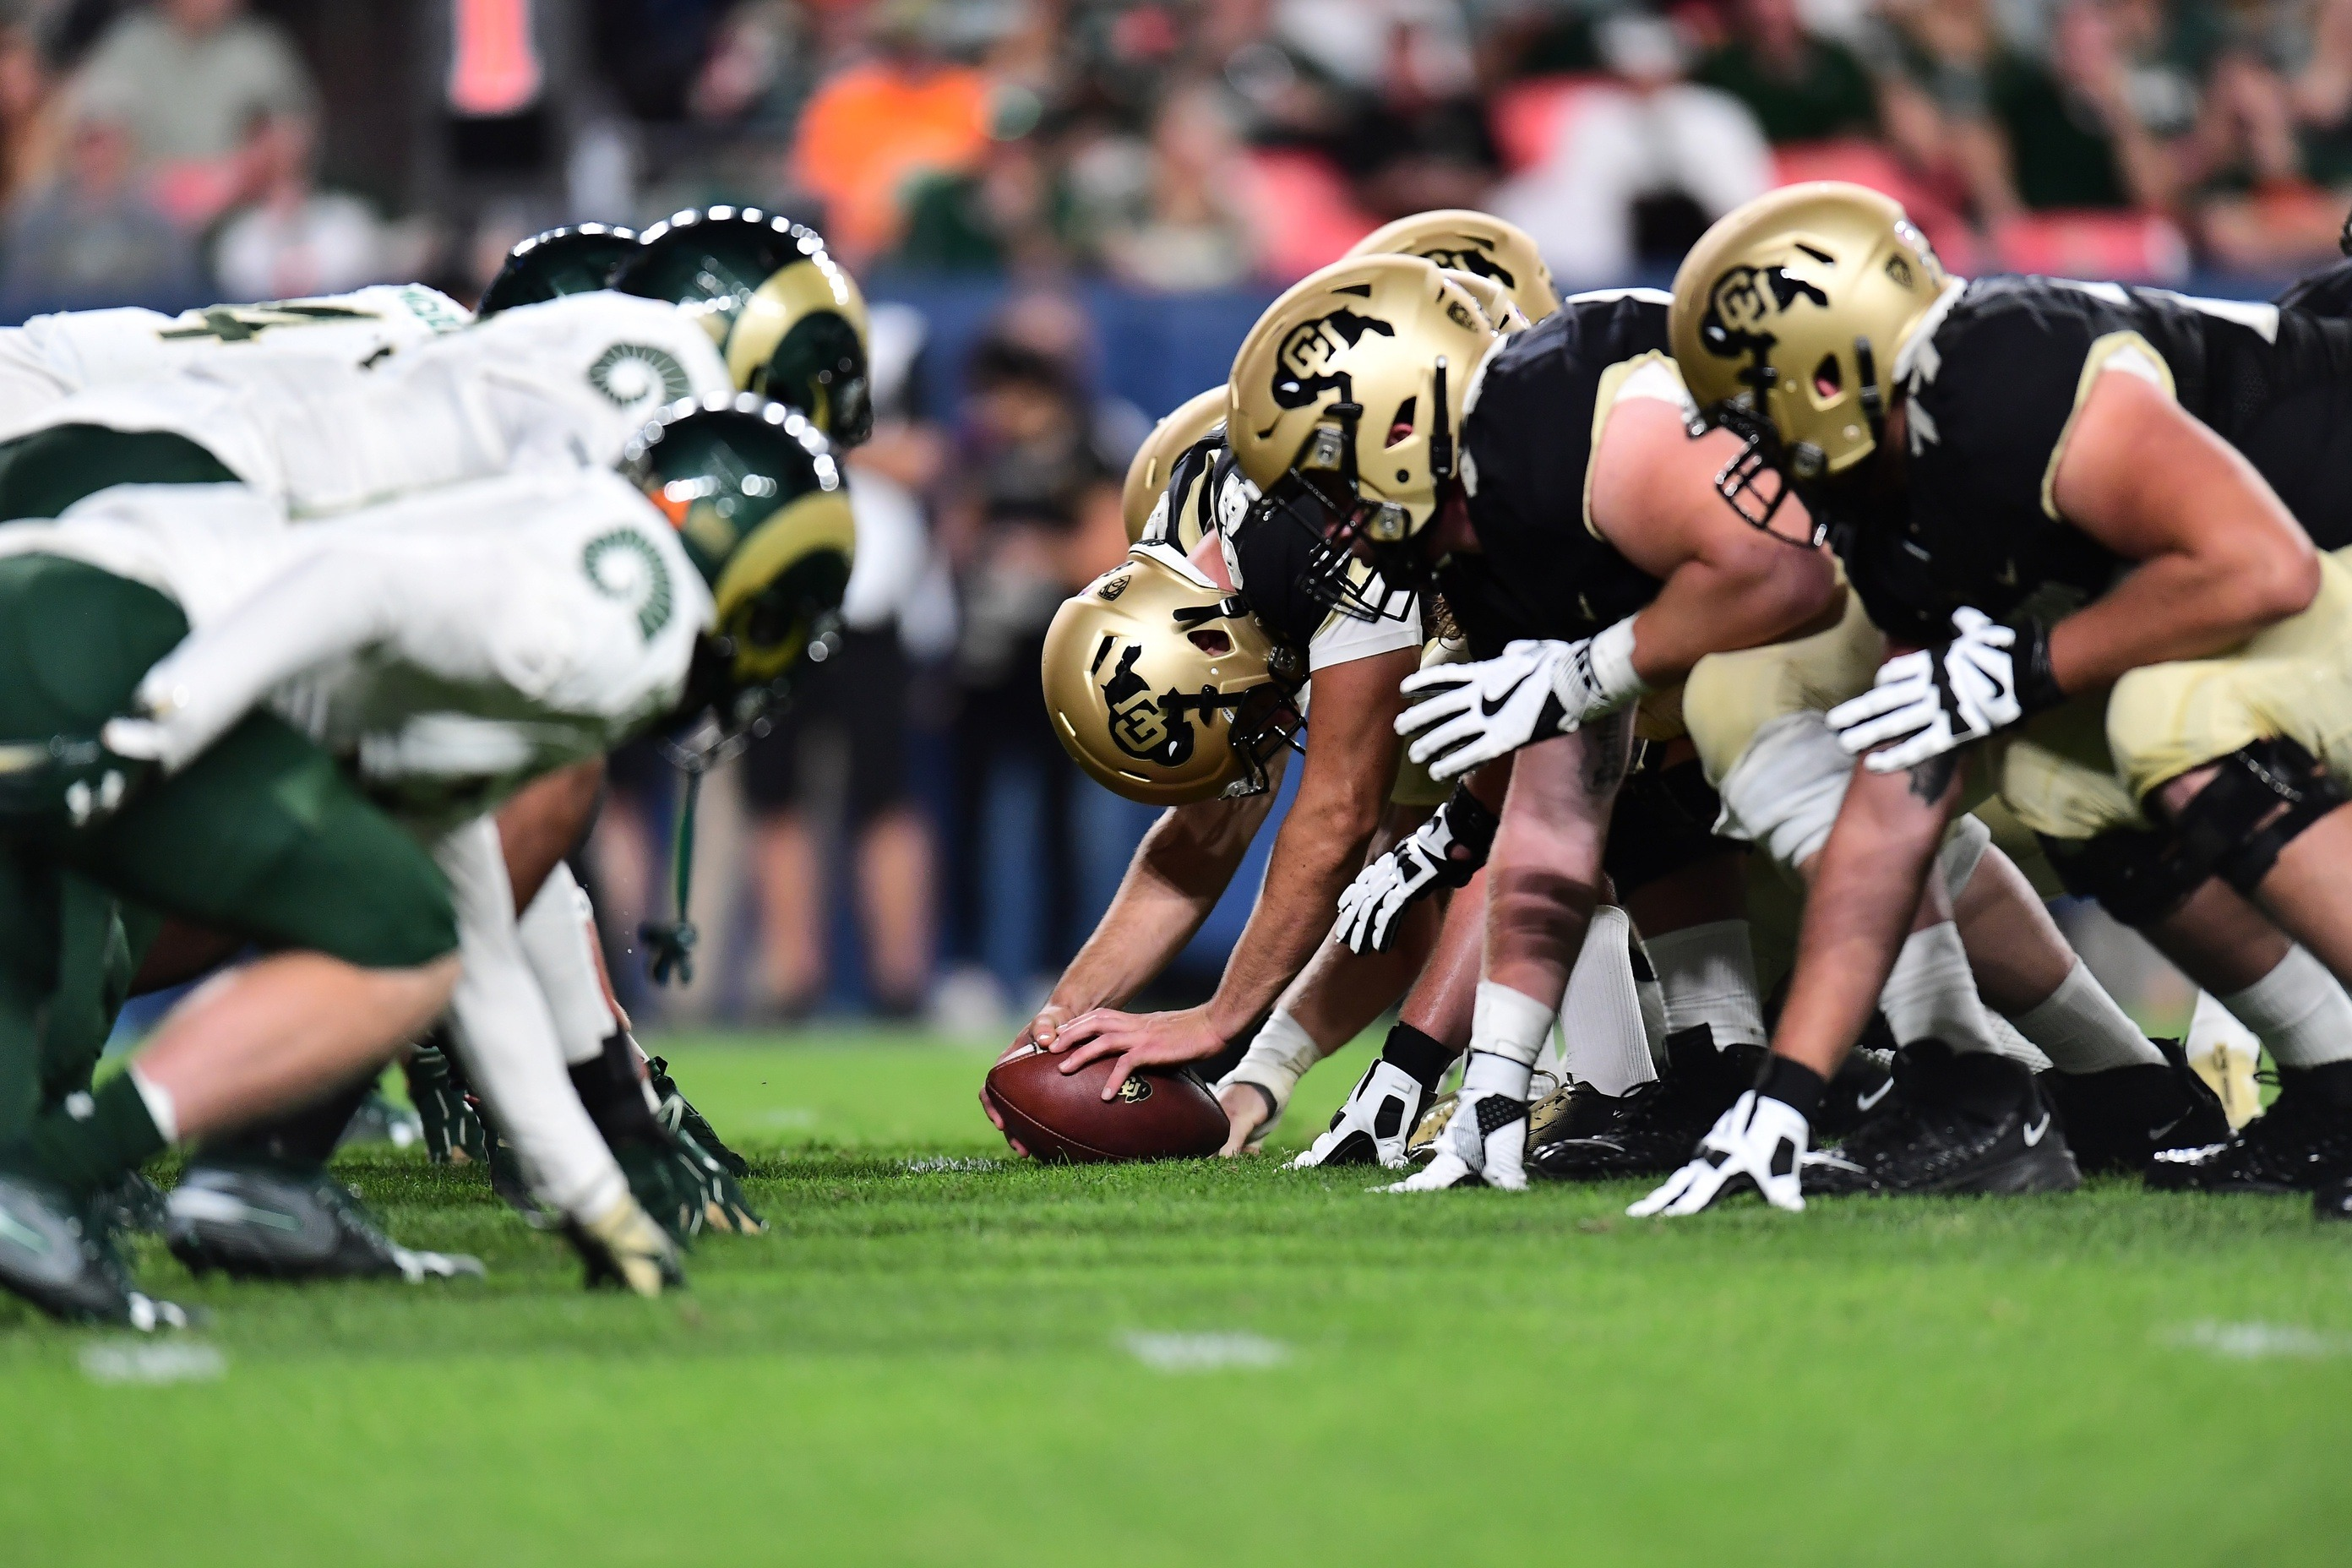 How the Pac-12's latest decision impacts CSU —and why it sucks for the Ram faithful